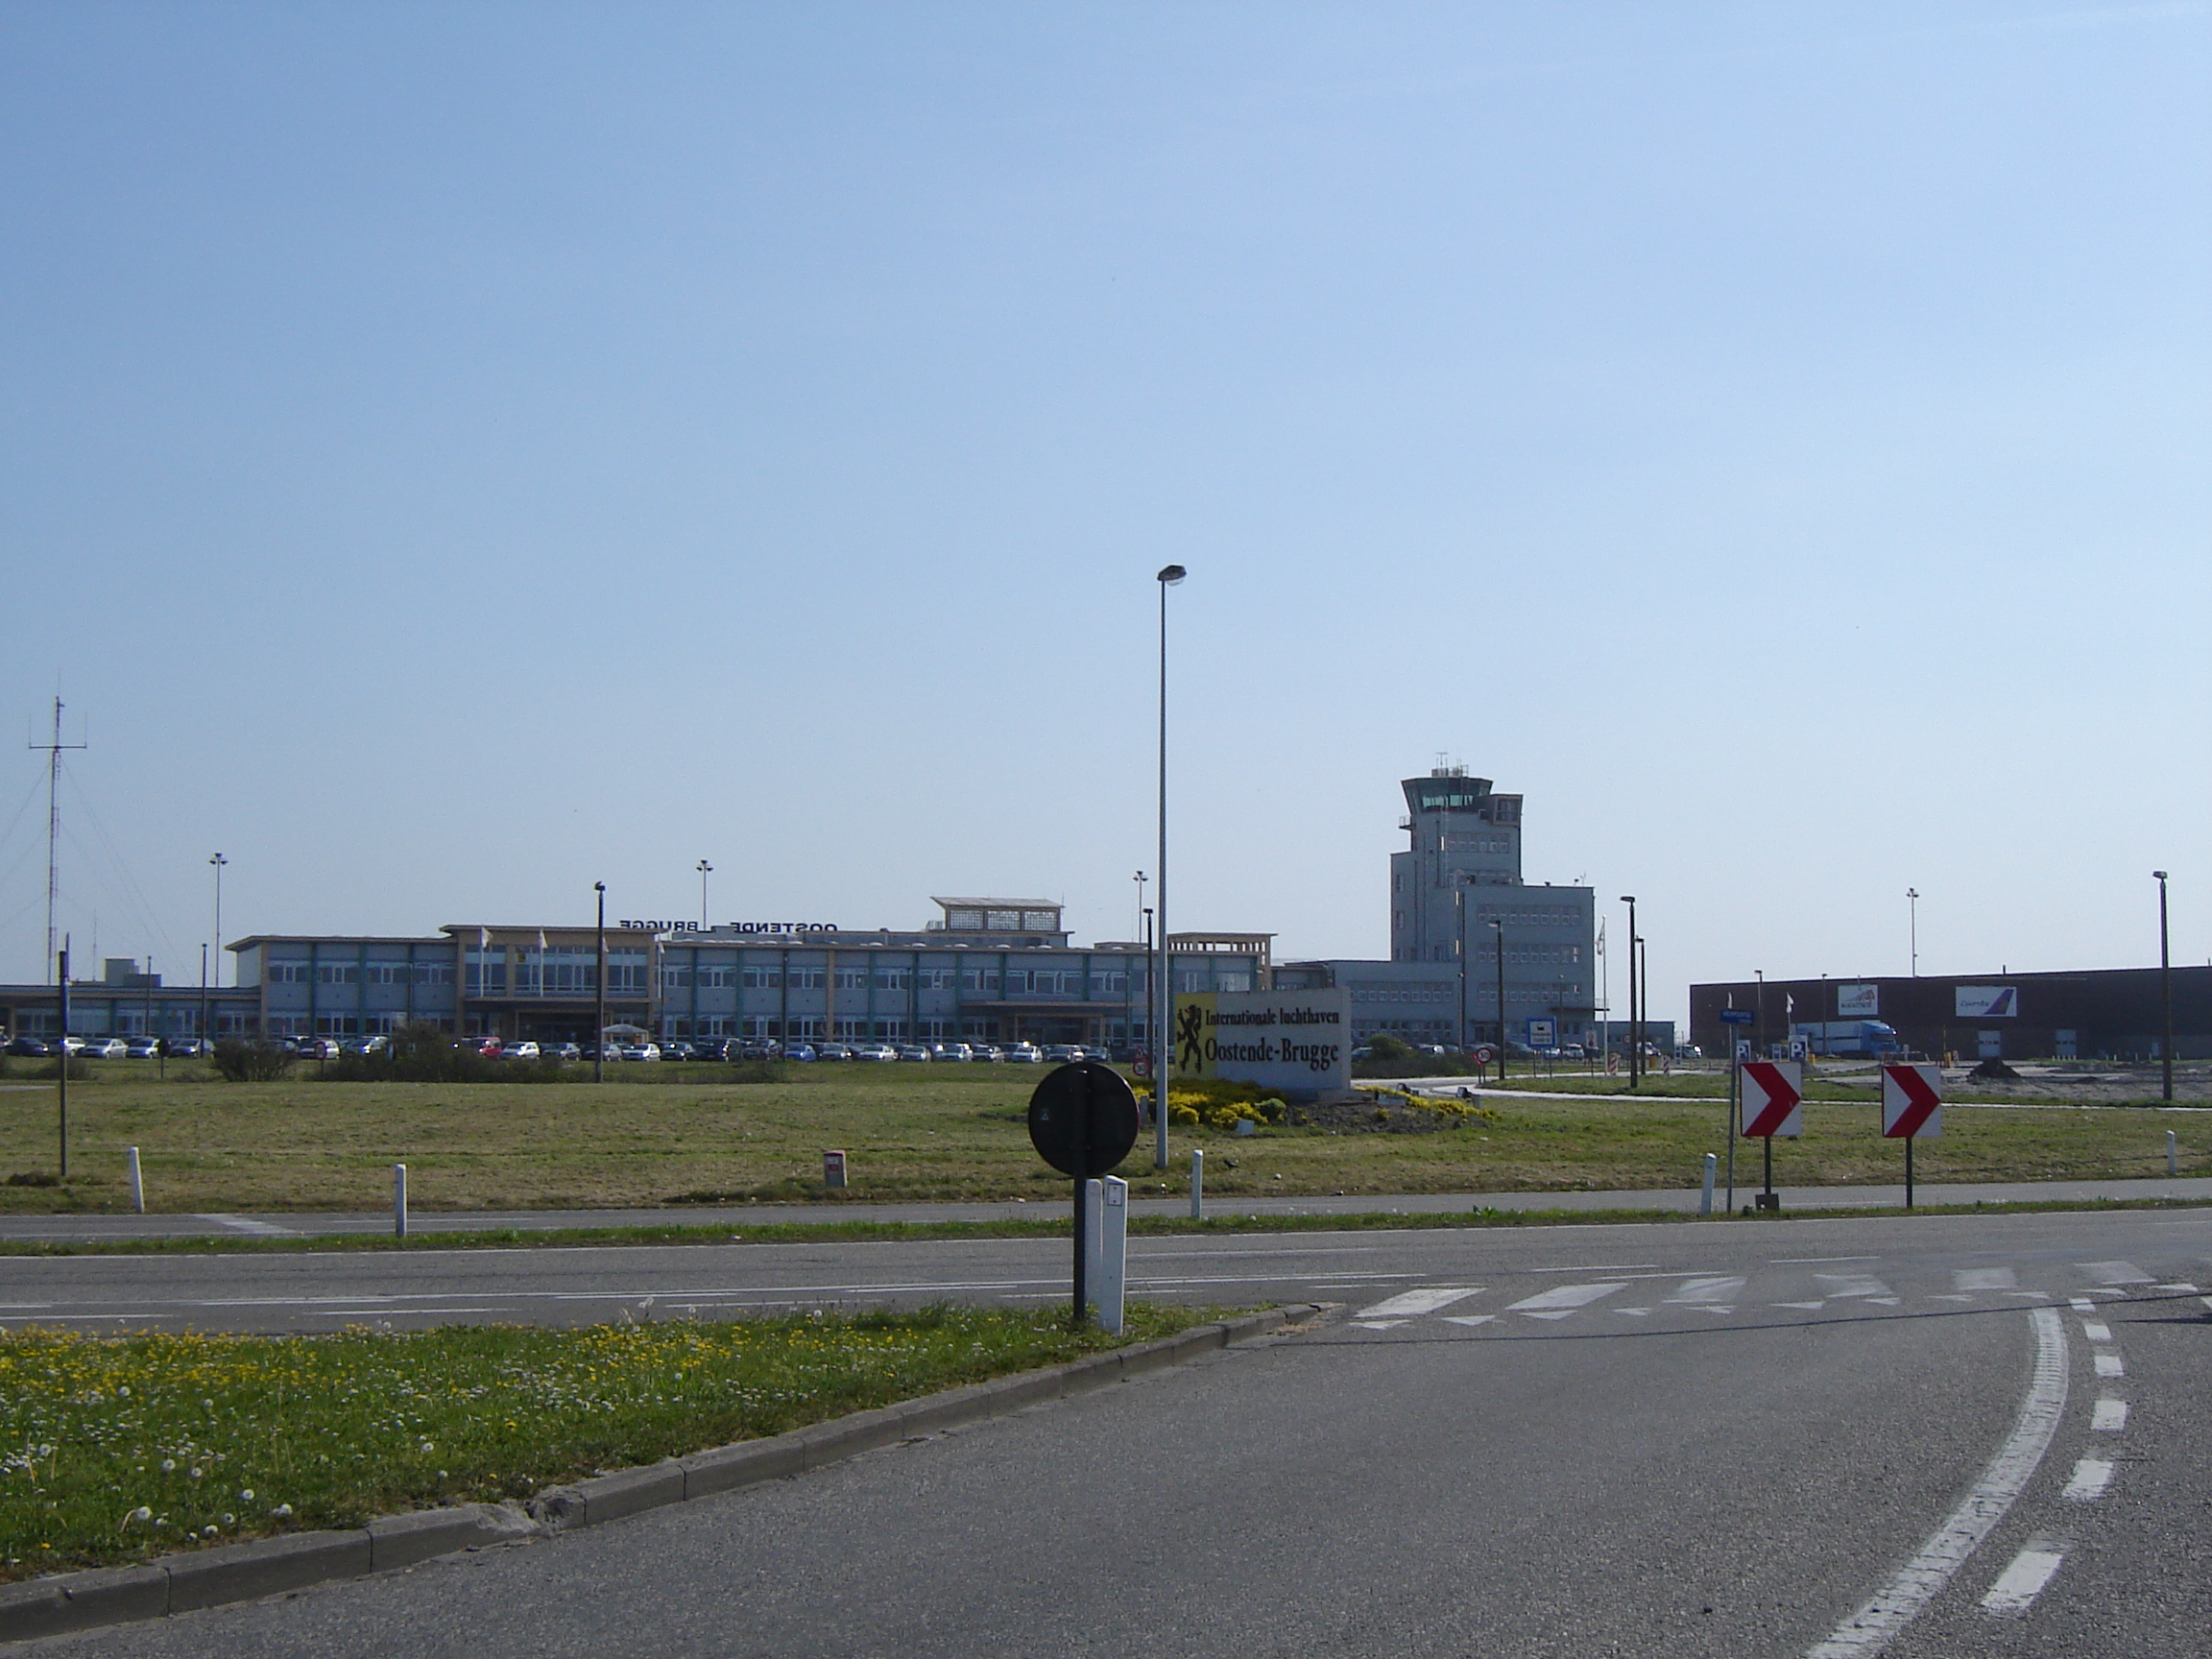 Аэропорт Остенде Брюгге (Ostend-Bruges International Airport). Официальный сайт.2